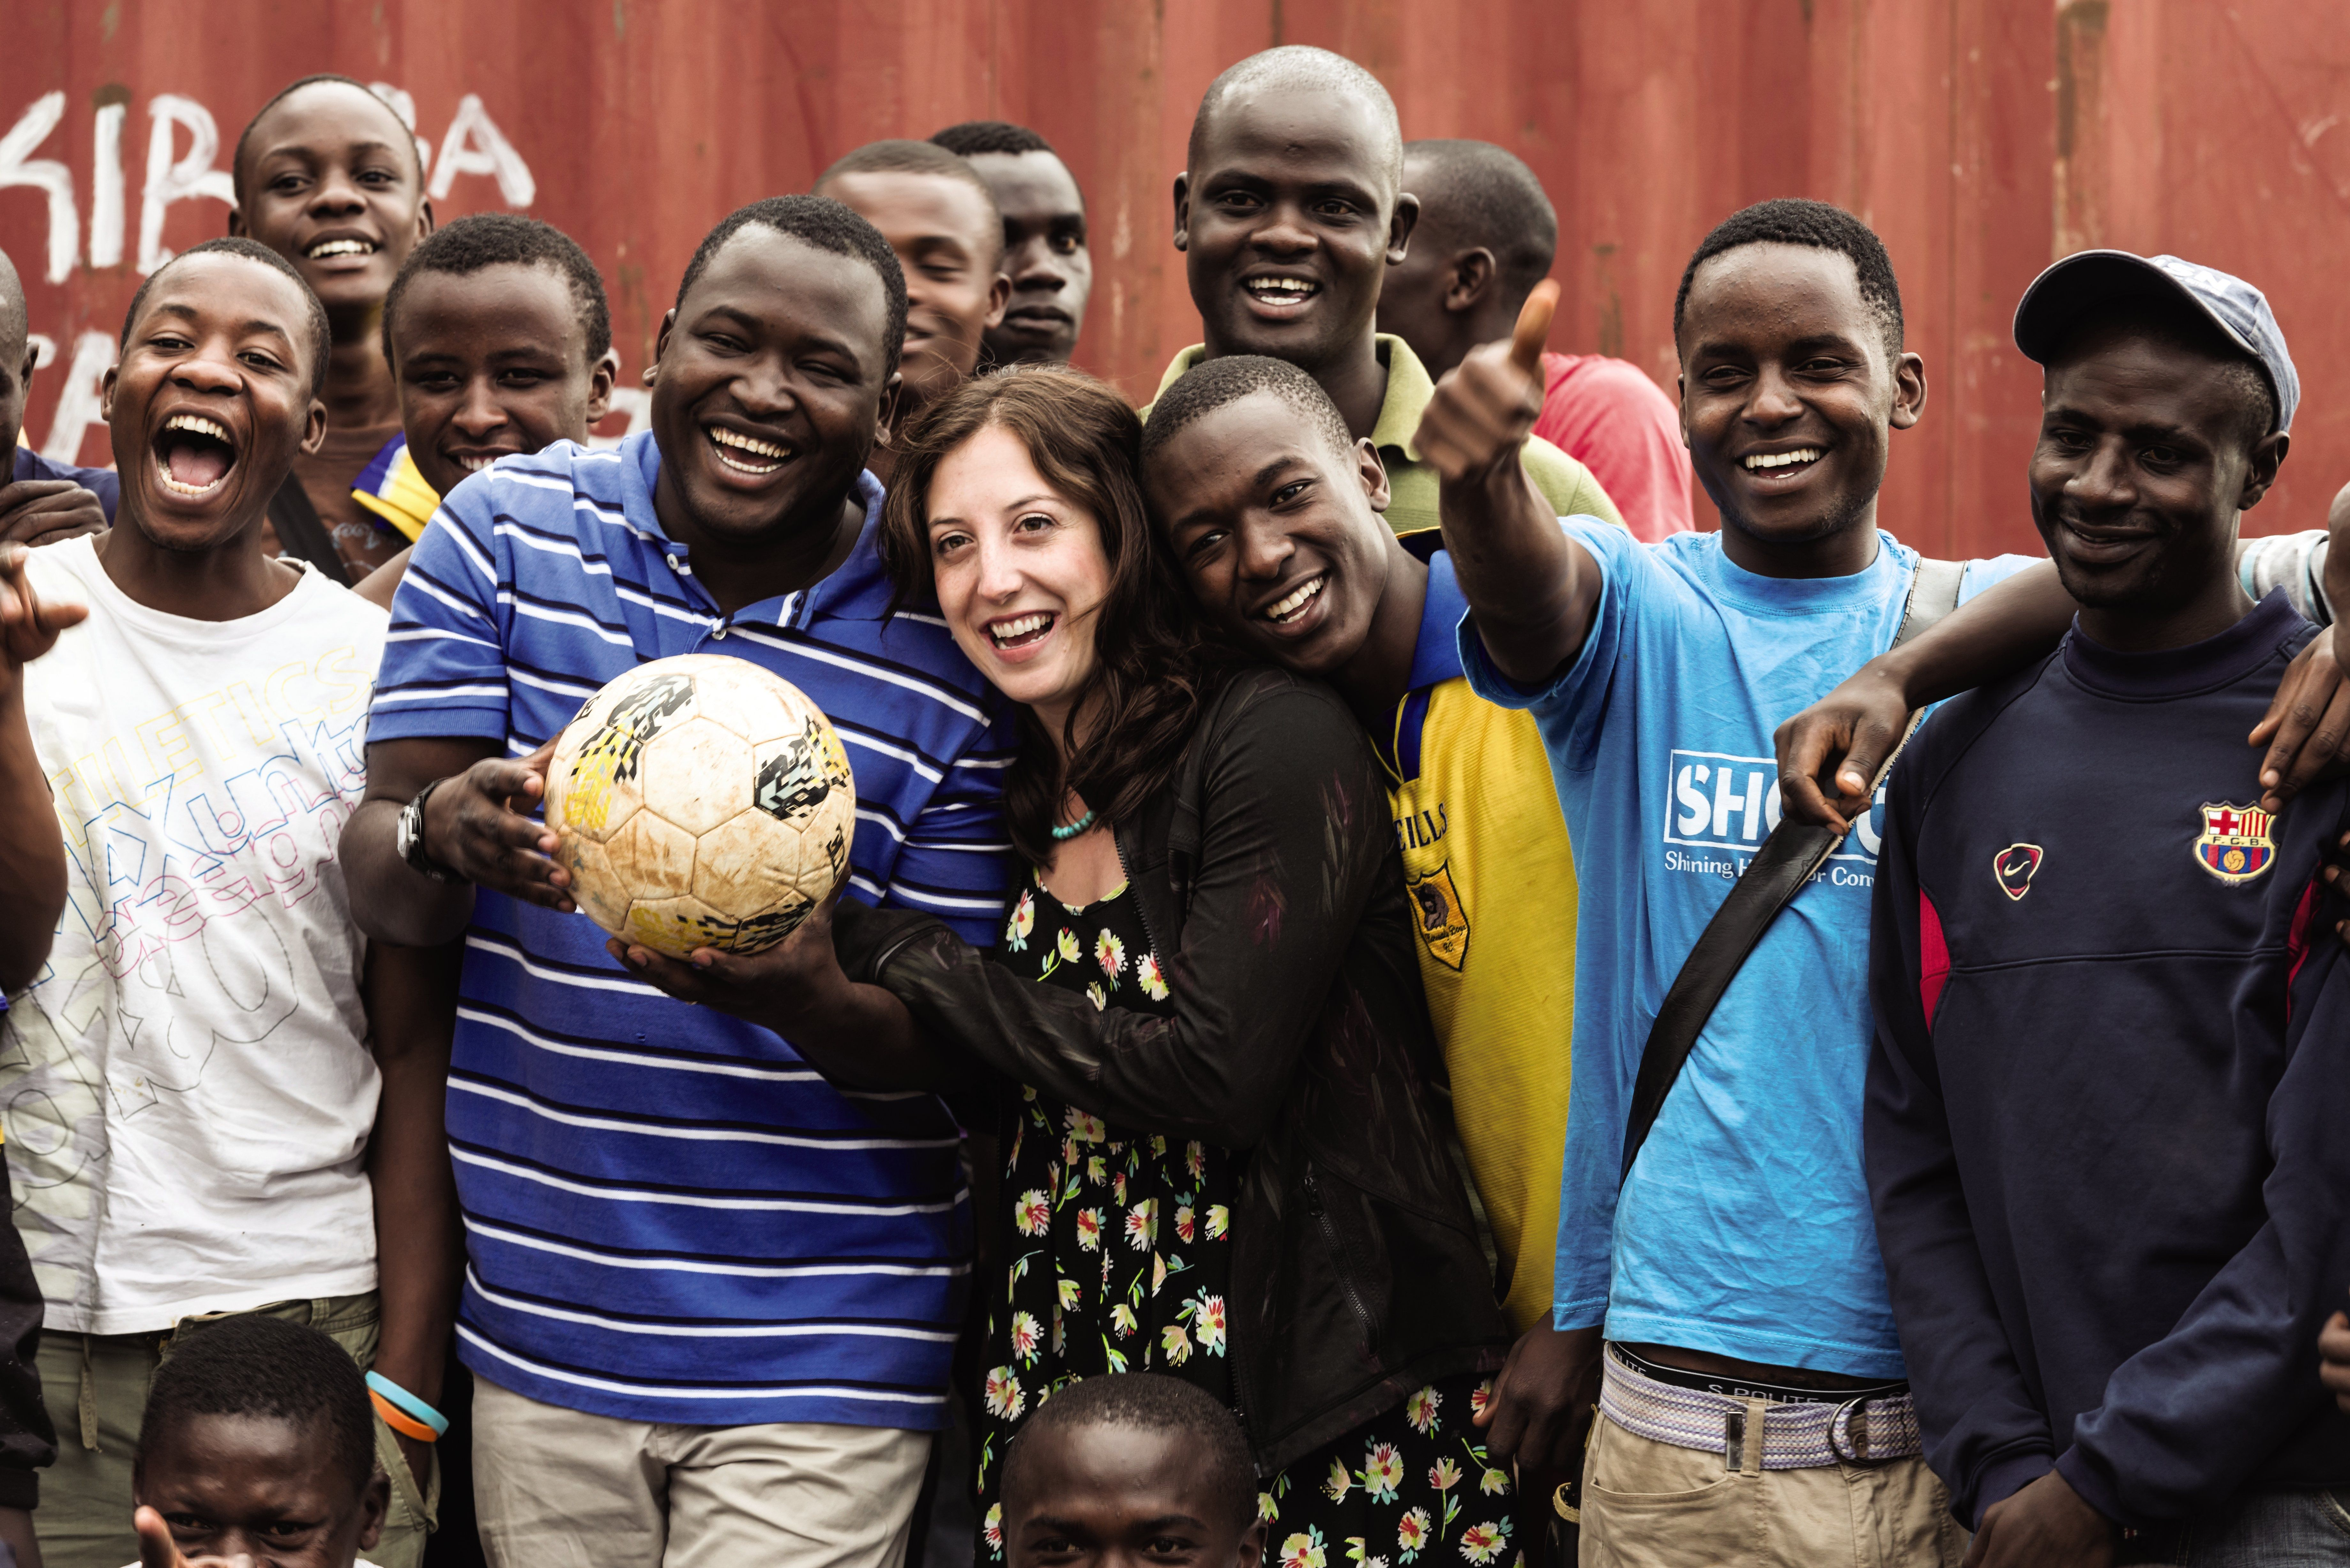 It Takes a Soccer Ball: SHOFCO founders Kennedy Odede and Jessica Posner.